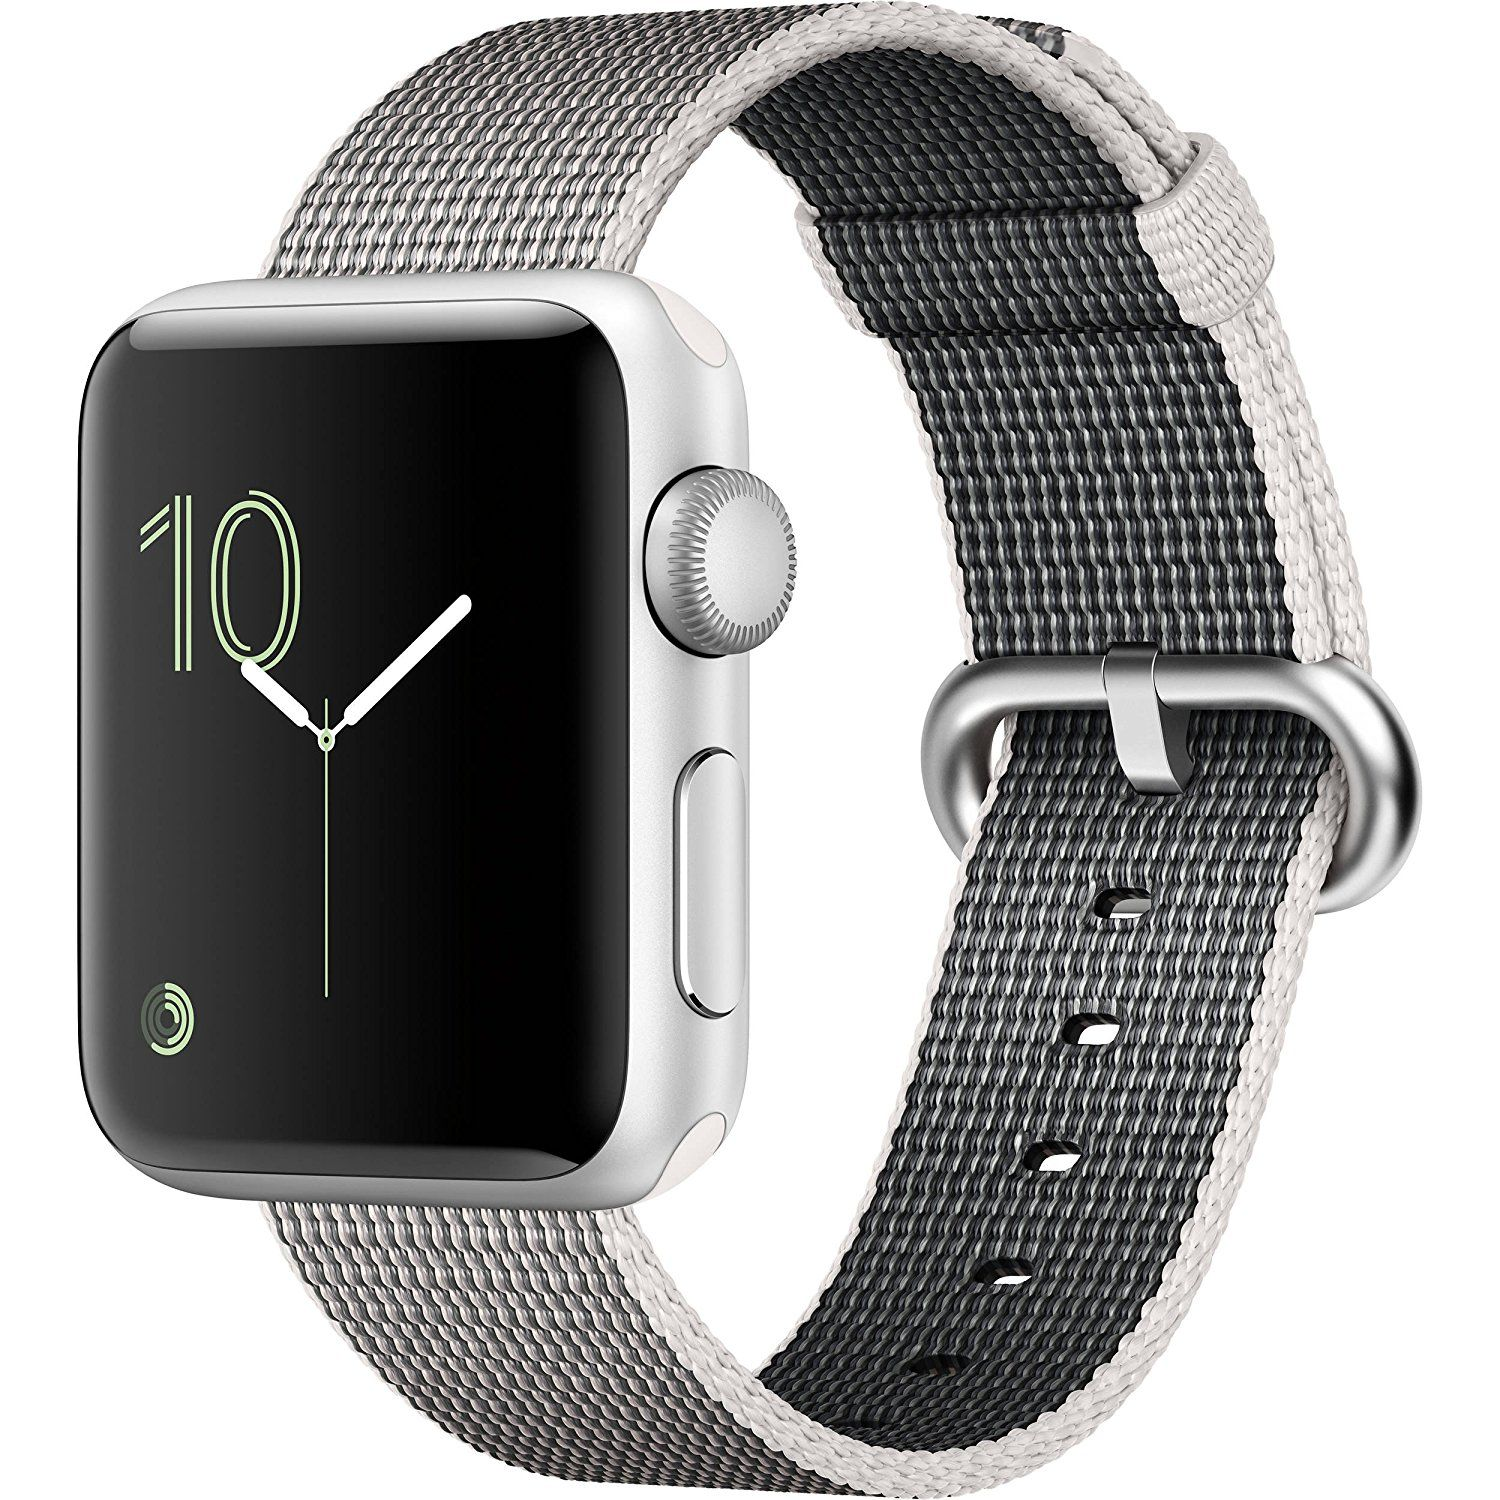 the latest d5b1f 26efd Amazon.com: Apple Watch Series 2, 38mm Silver Aluminum Case with ...